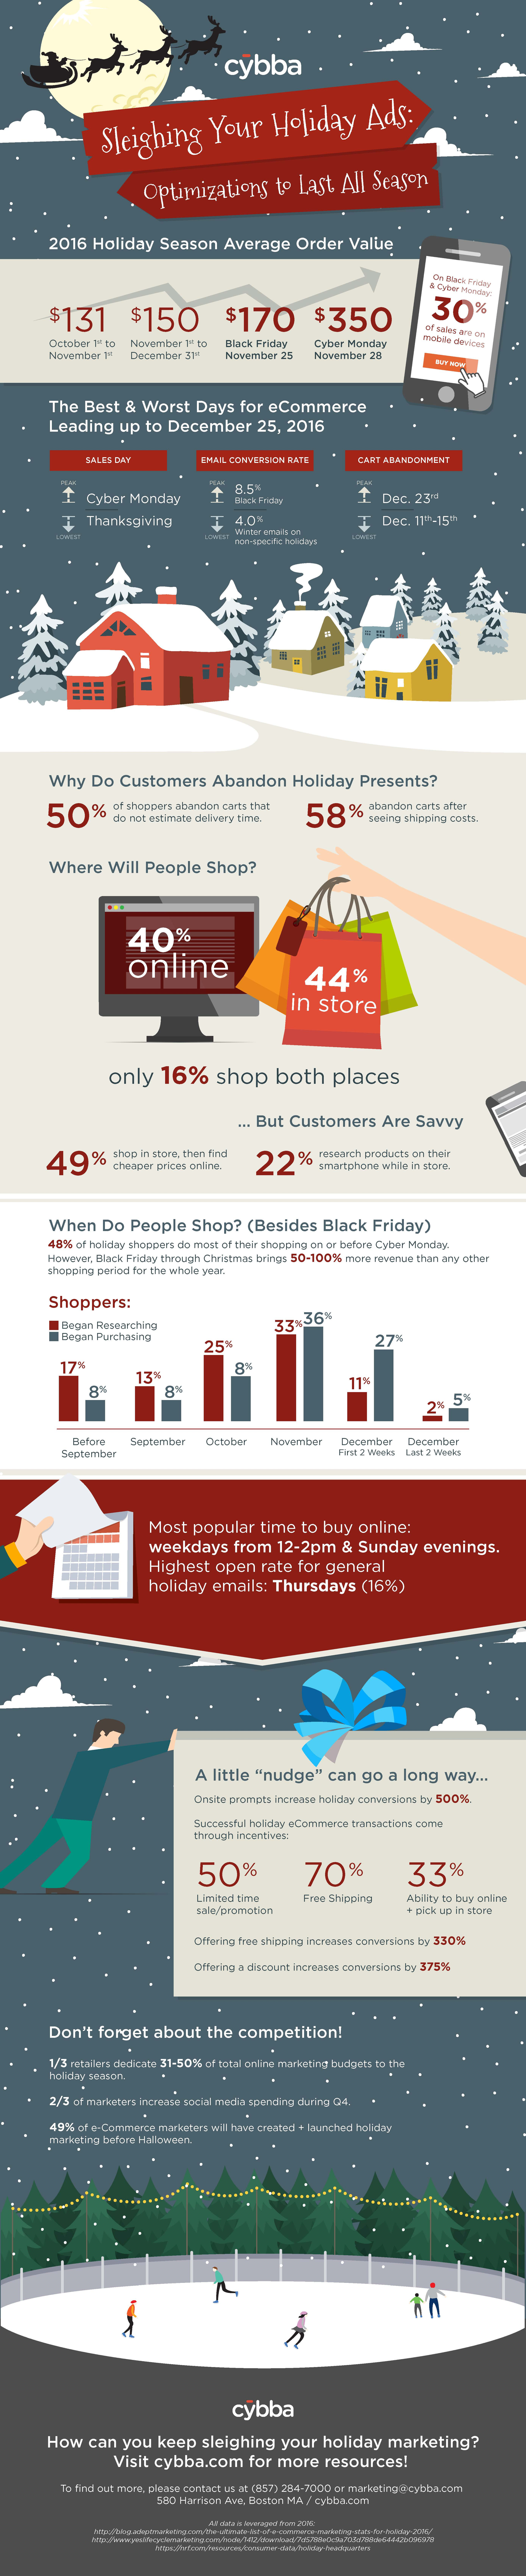 SleighingYourHolidayAds_Infographic_R3